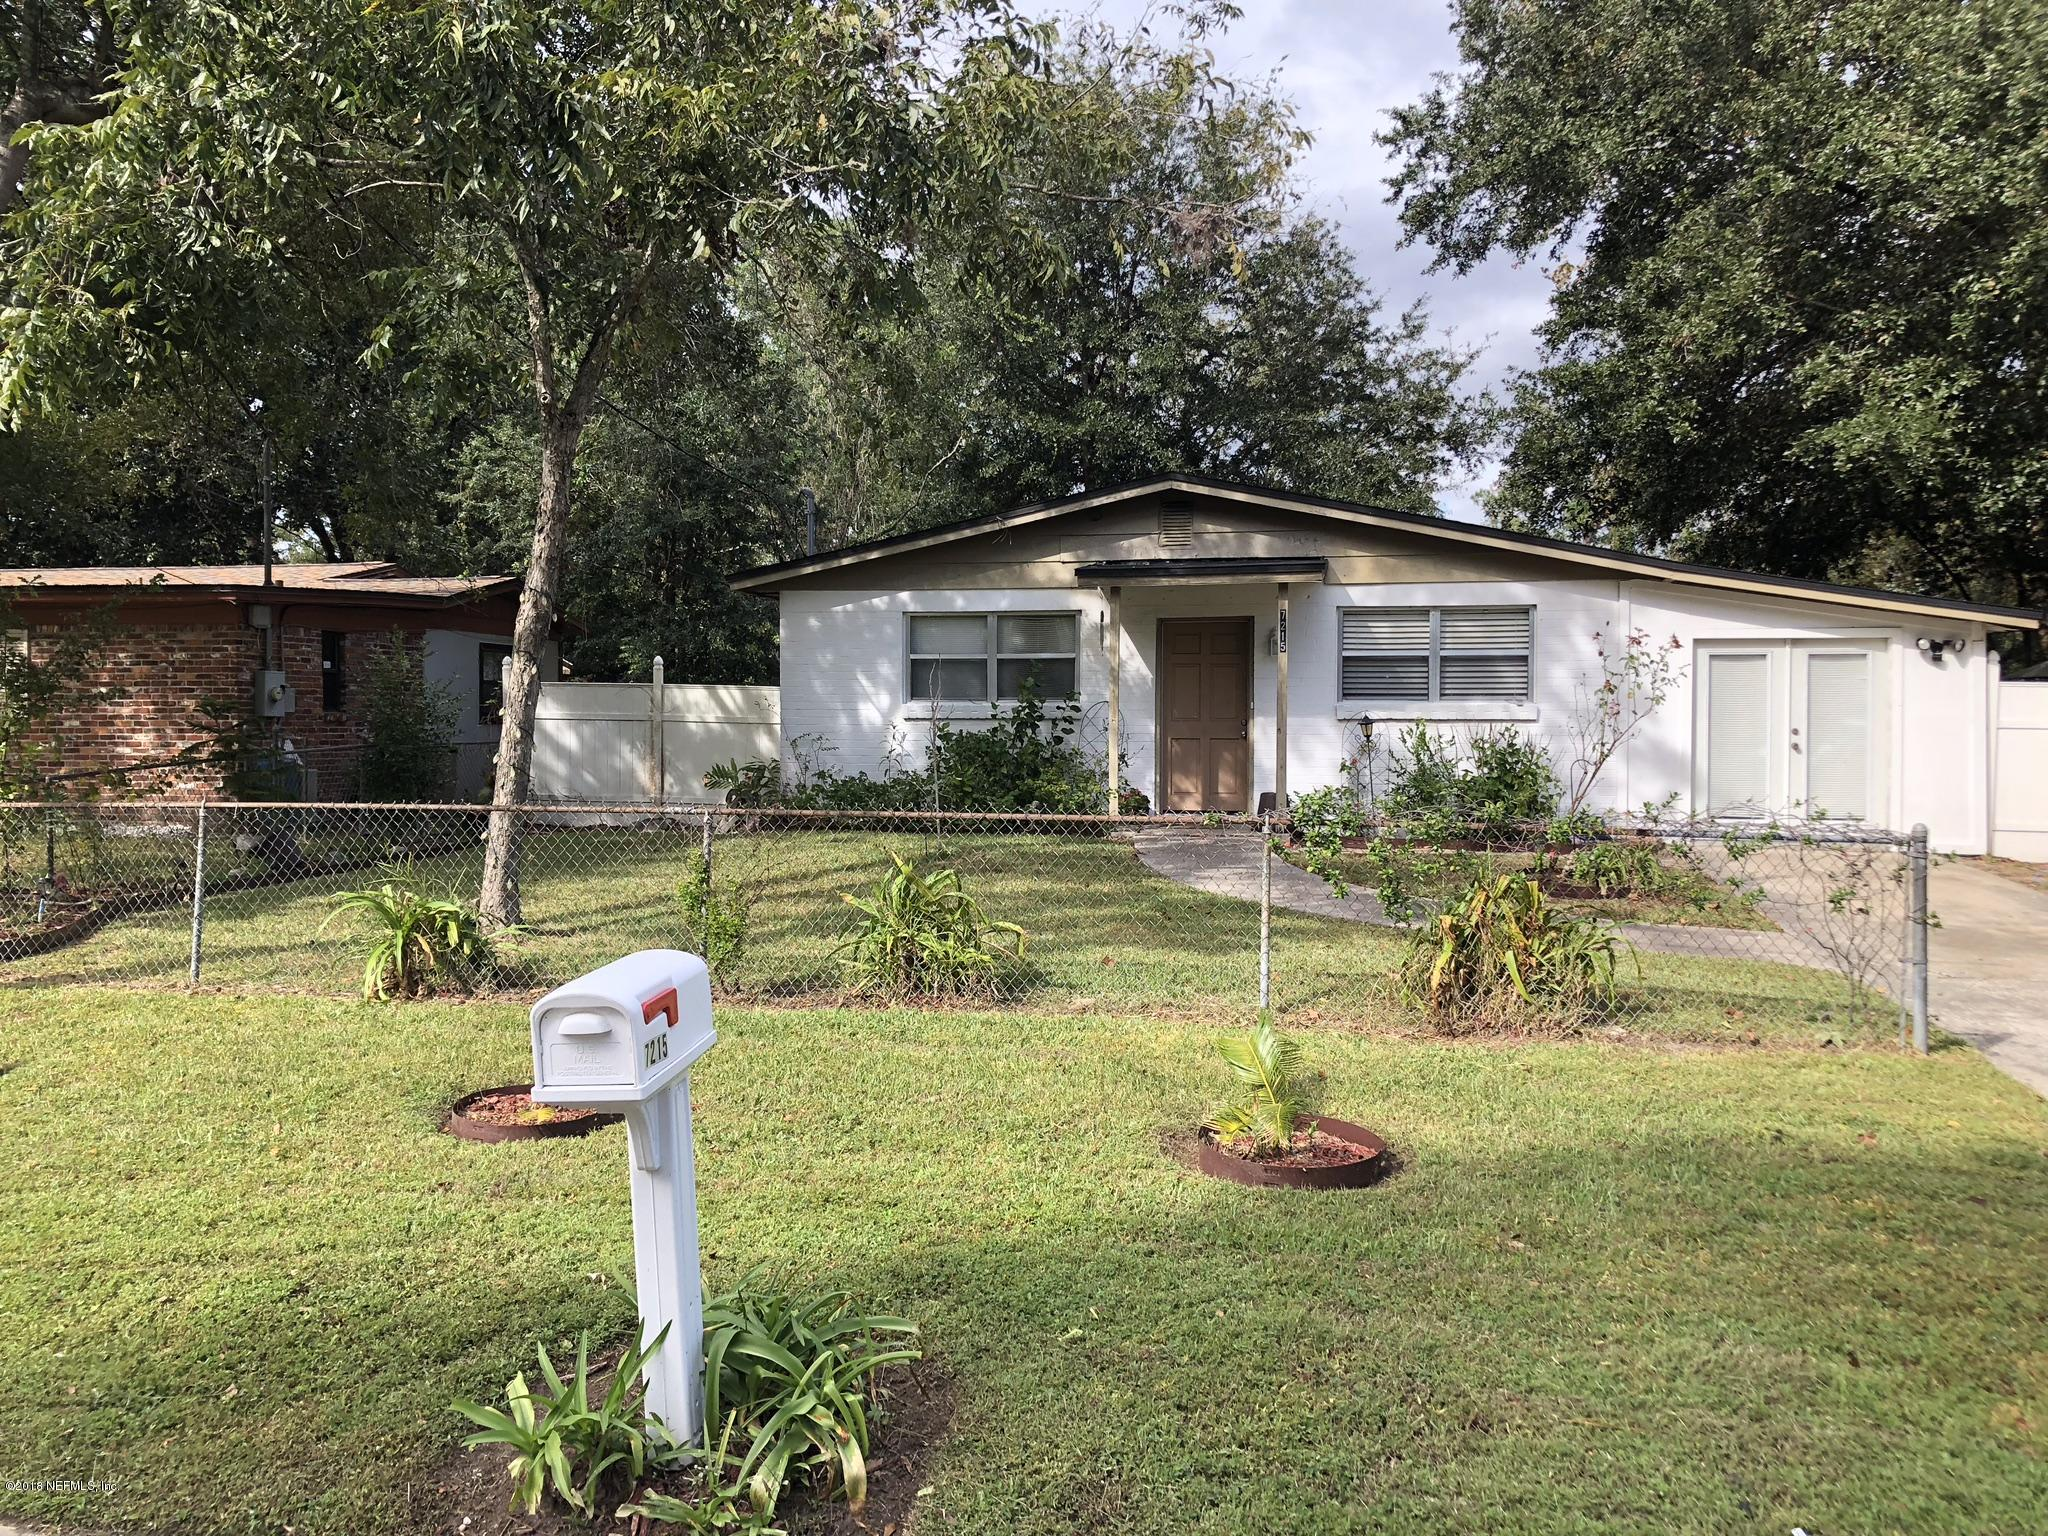 7215 KARENITA, JACKSONVILLE, FLORIDA 32210, 4 Bedrooms Bedrooms, ,2 BathroomsBathrooms,Residential - single family,For sale,KARENITA,965116